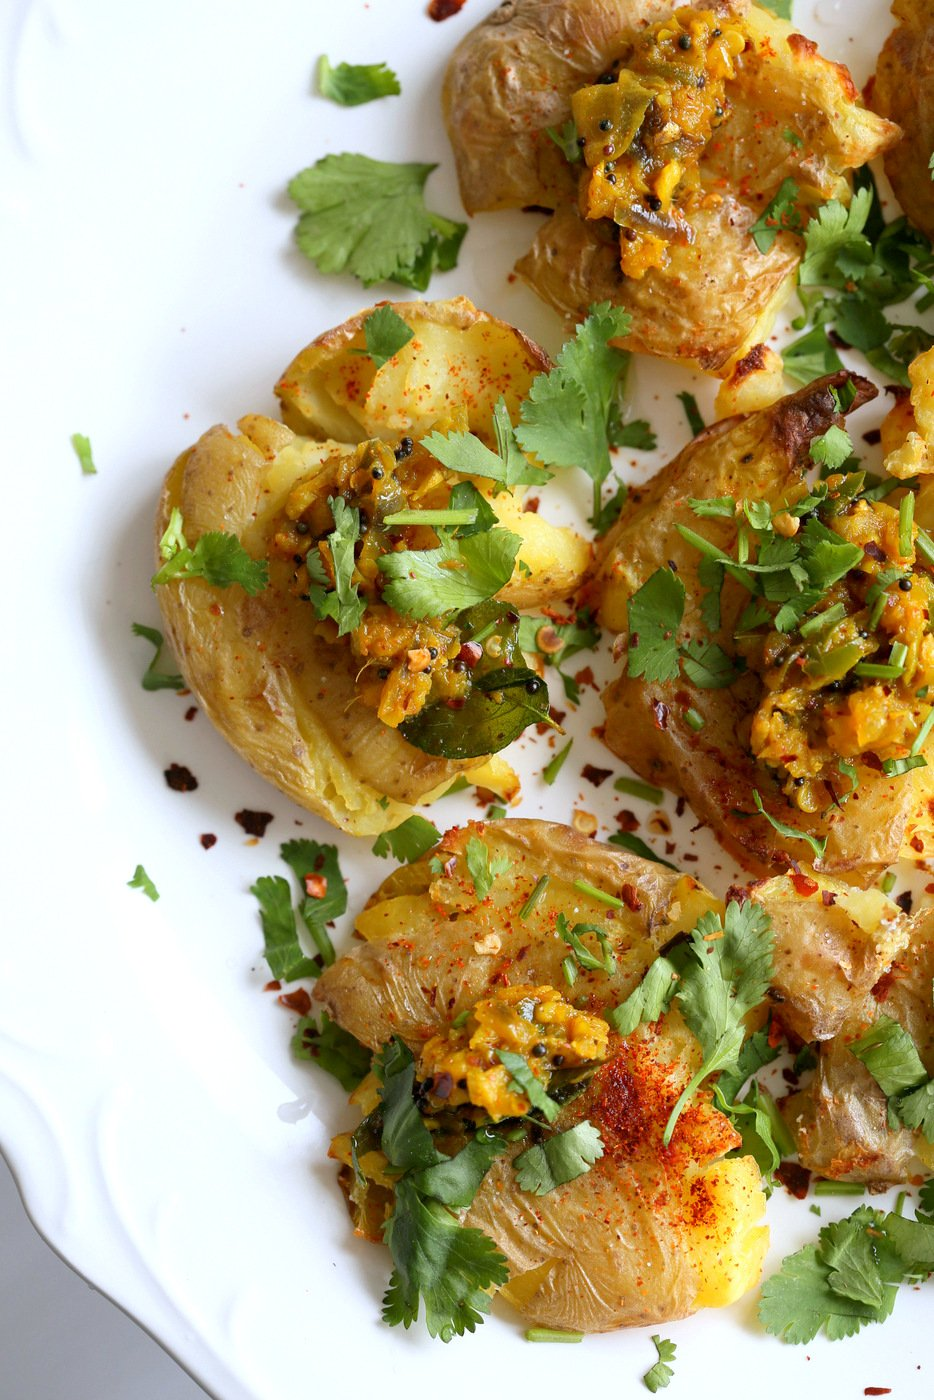 Indian Spiced Smashed Potatoes with Mustard Ginger Tempering. Bonda like Samosa is a spiced potato snack. These smashed potatoes are topped with Bonda style tempering of ginger, chile, turmeric and mustard seeds. Vegan Gluten-free Recipe   VeganRicha.com